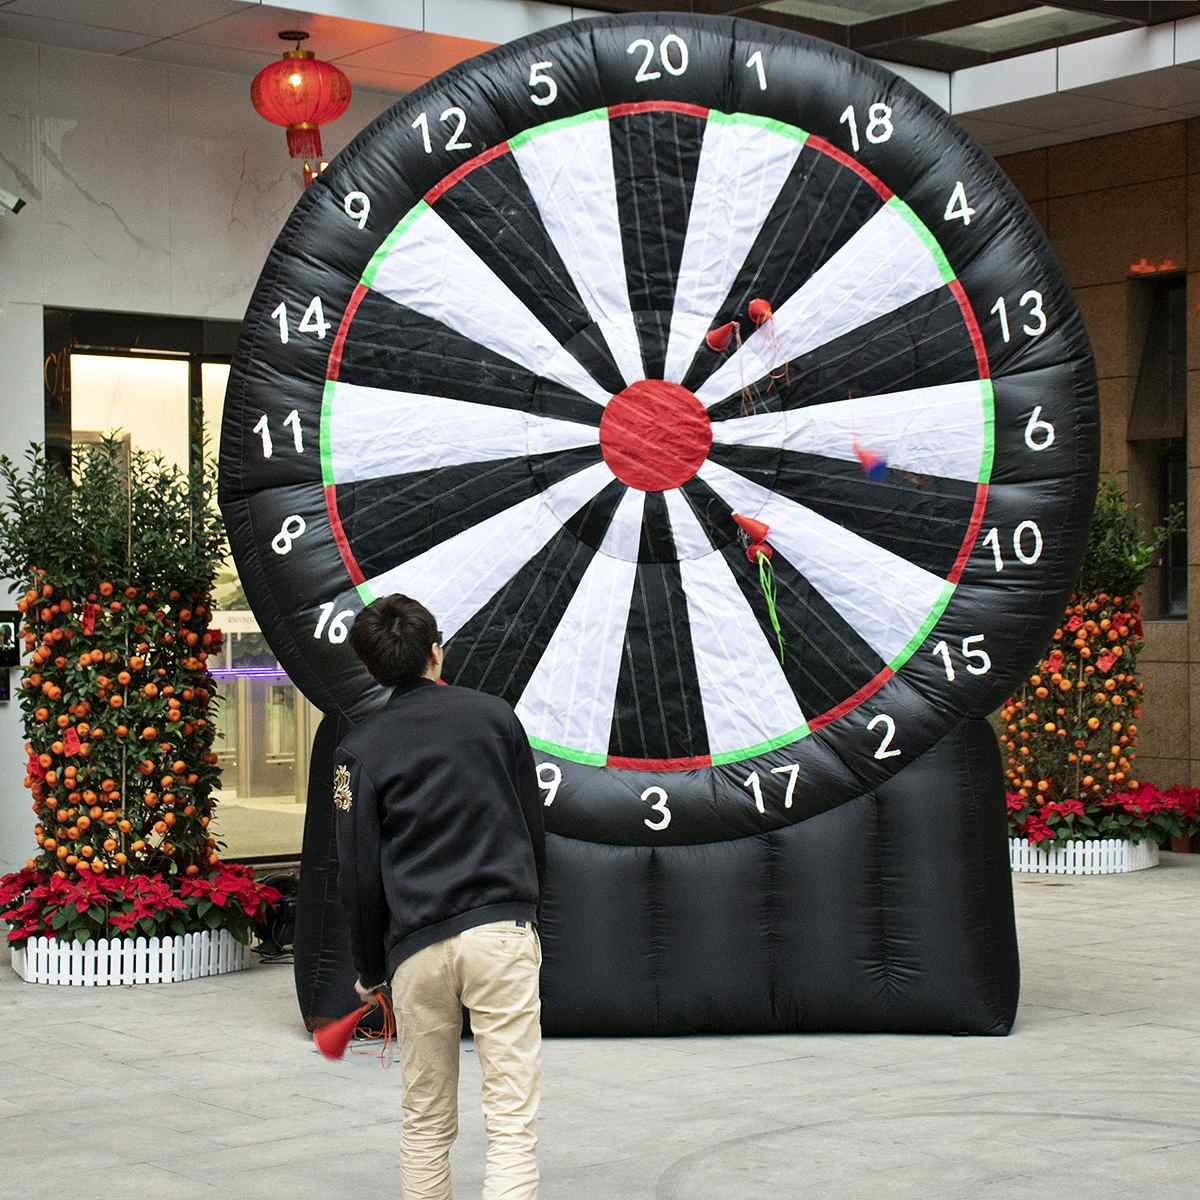 4 Meter Giant Inflatable Dart Board With Air Blower 220V